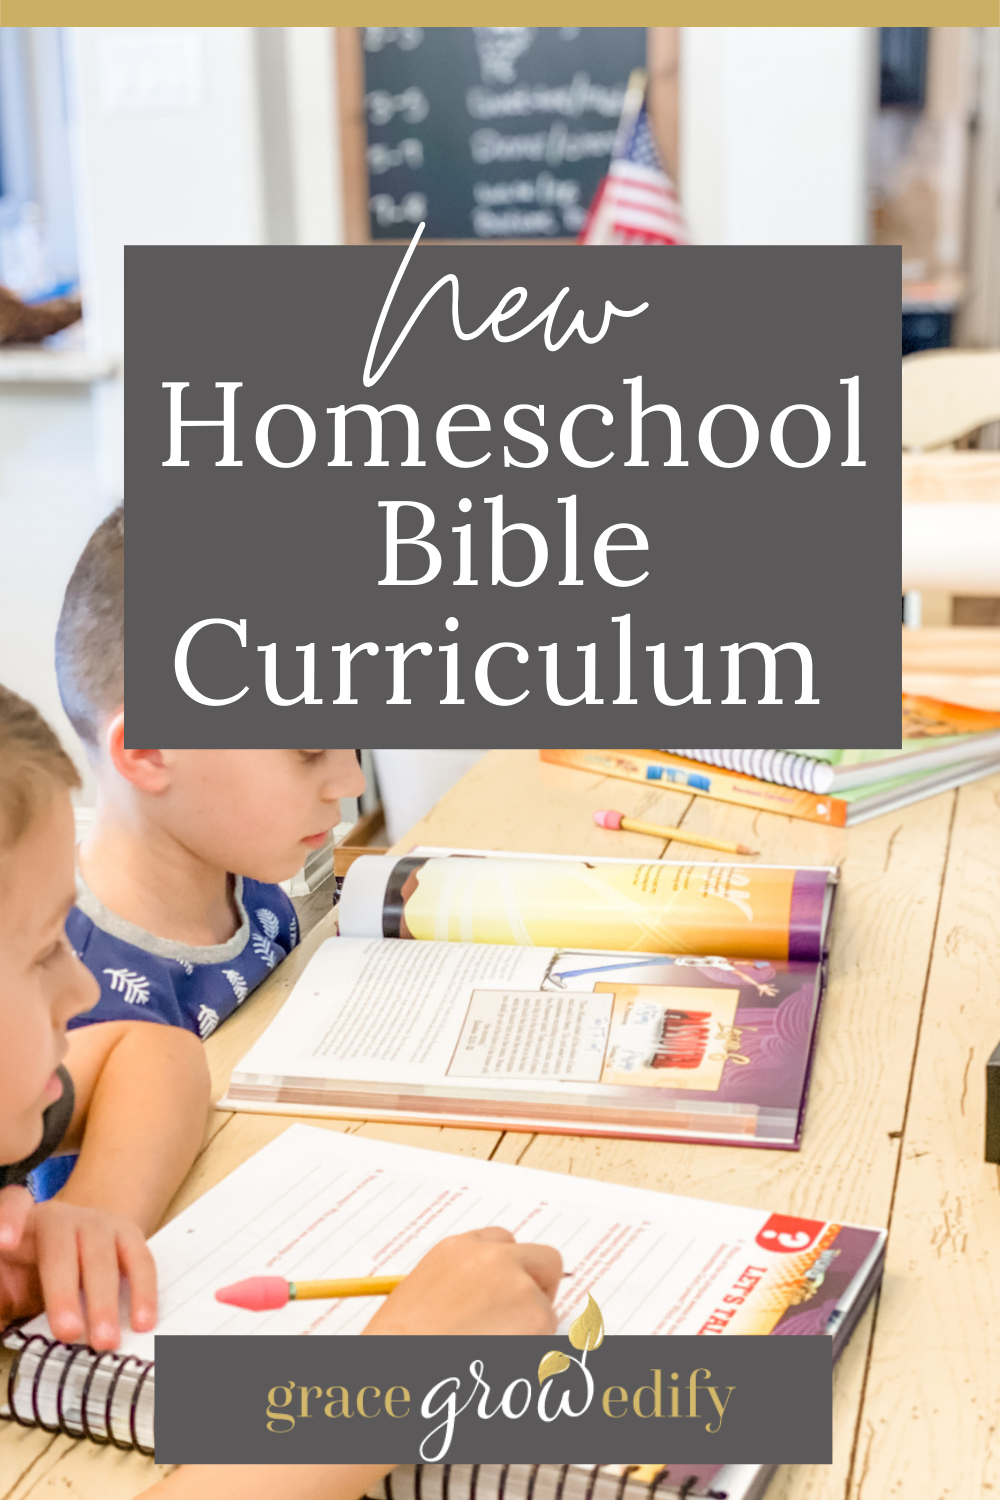 See Apologia's new homeschool Bible curriculum, The Word in Motion, for families who want to incorporate Bible study into their days. #homeschoolbible #Biblestudyforkids #Biblecurriculum #homeschoolcurriculum #christianhomeschool